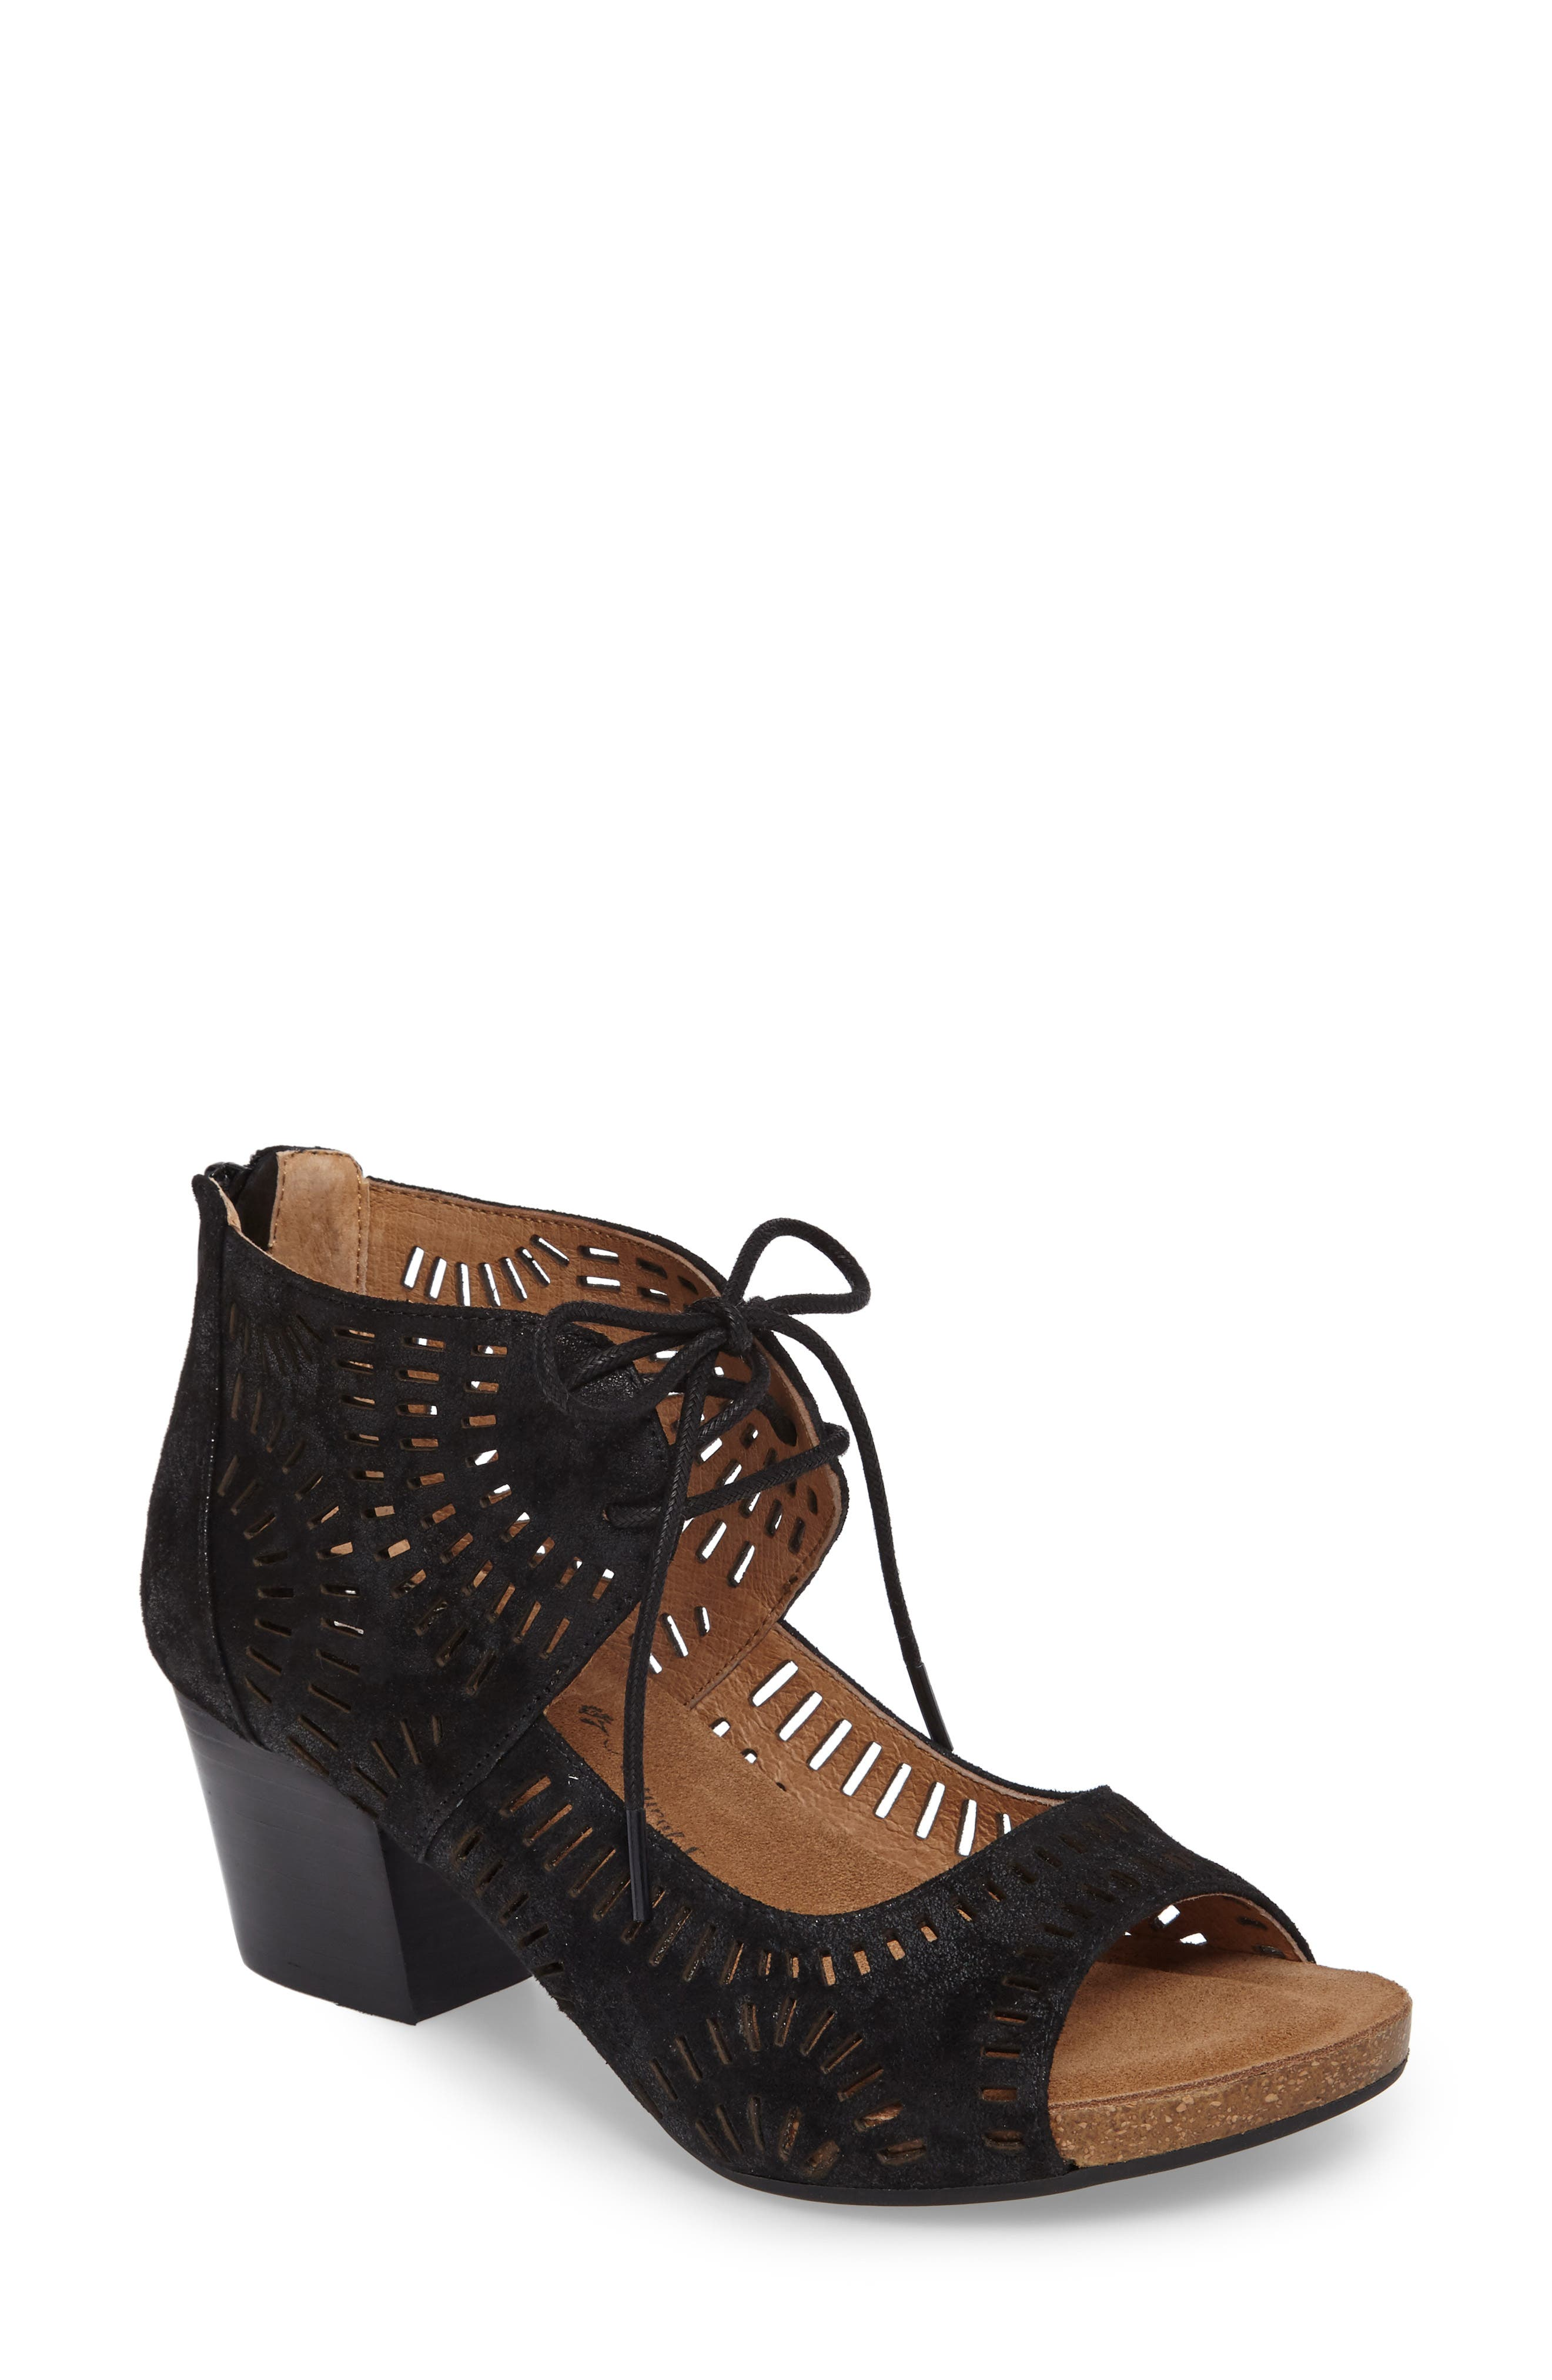 Modesto Perforated Sandal,                             Main thumbnail 1, color,                             Black Distressed Foil Suede